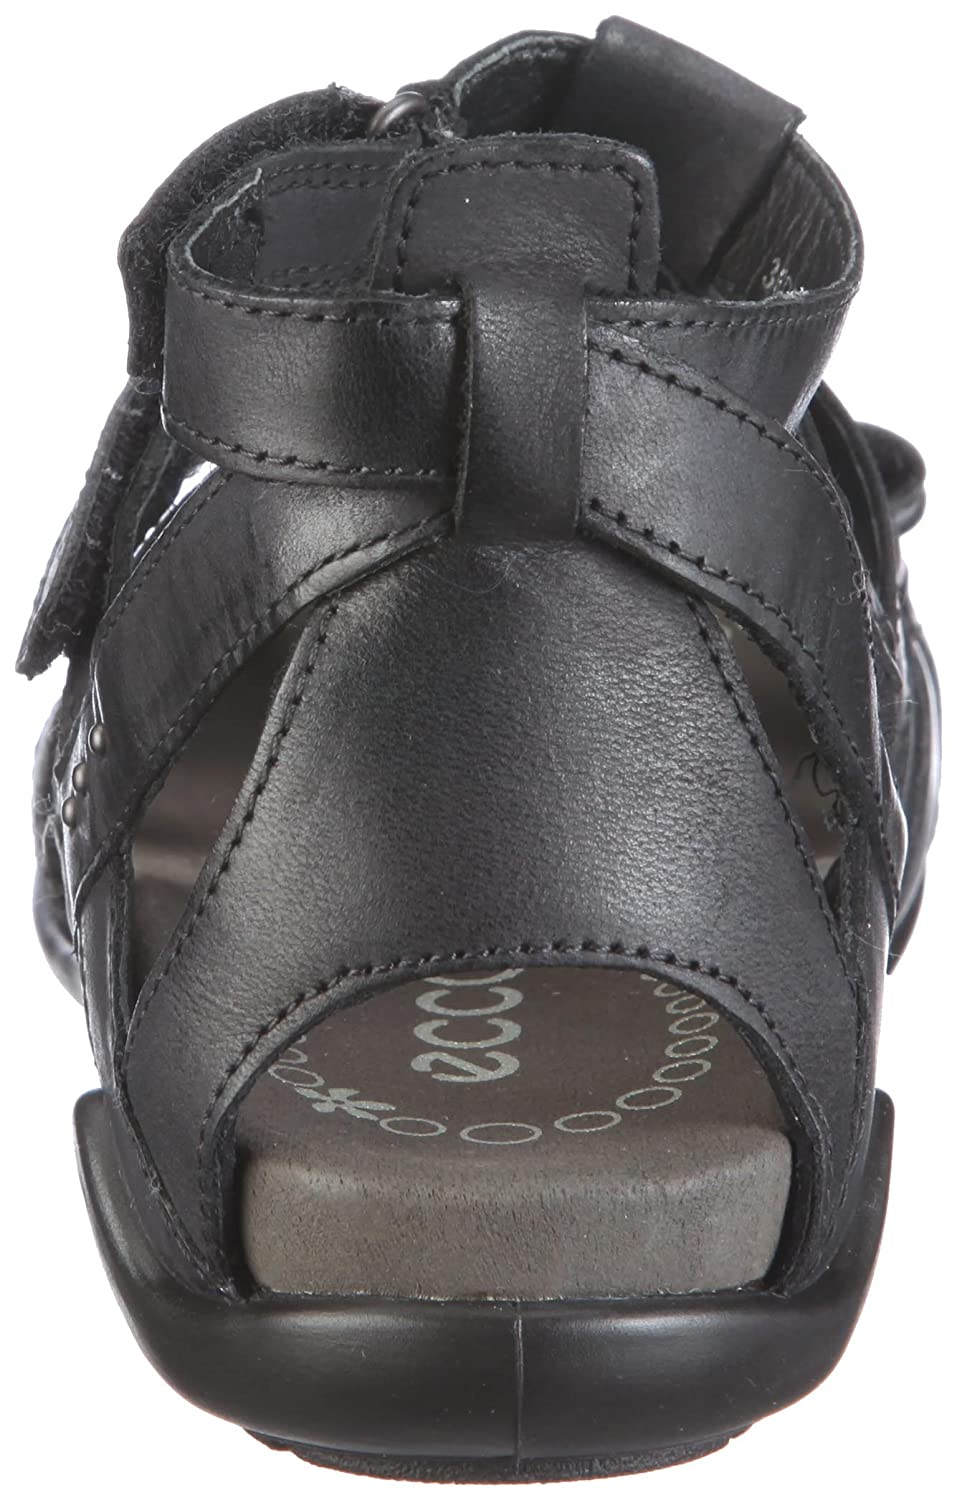 ECCO G.S.I. Girl's Sandal BlackBlack UK 1 Junior: Amazon.co